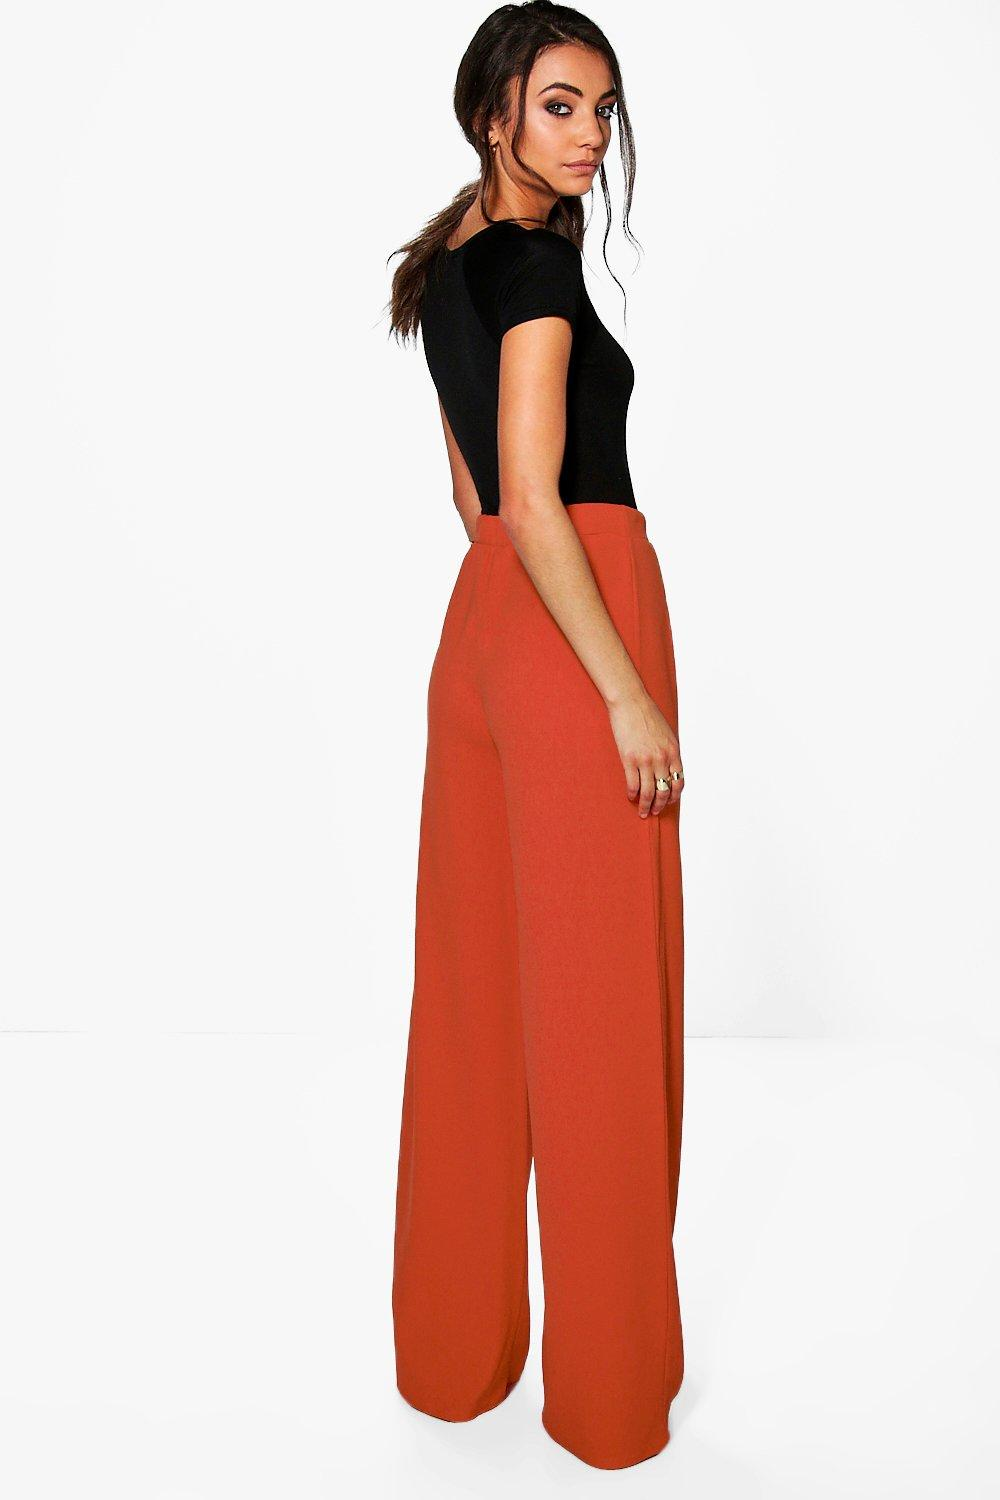 Tall Women's Pants to Build Your Work Wardrobe. JCPenney is the place to shop for tall women's pants. Women's work fashion is booming. Designers are coming out with clothes for working women that are not only trendy but work appropriate too.